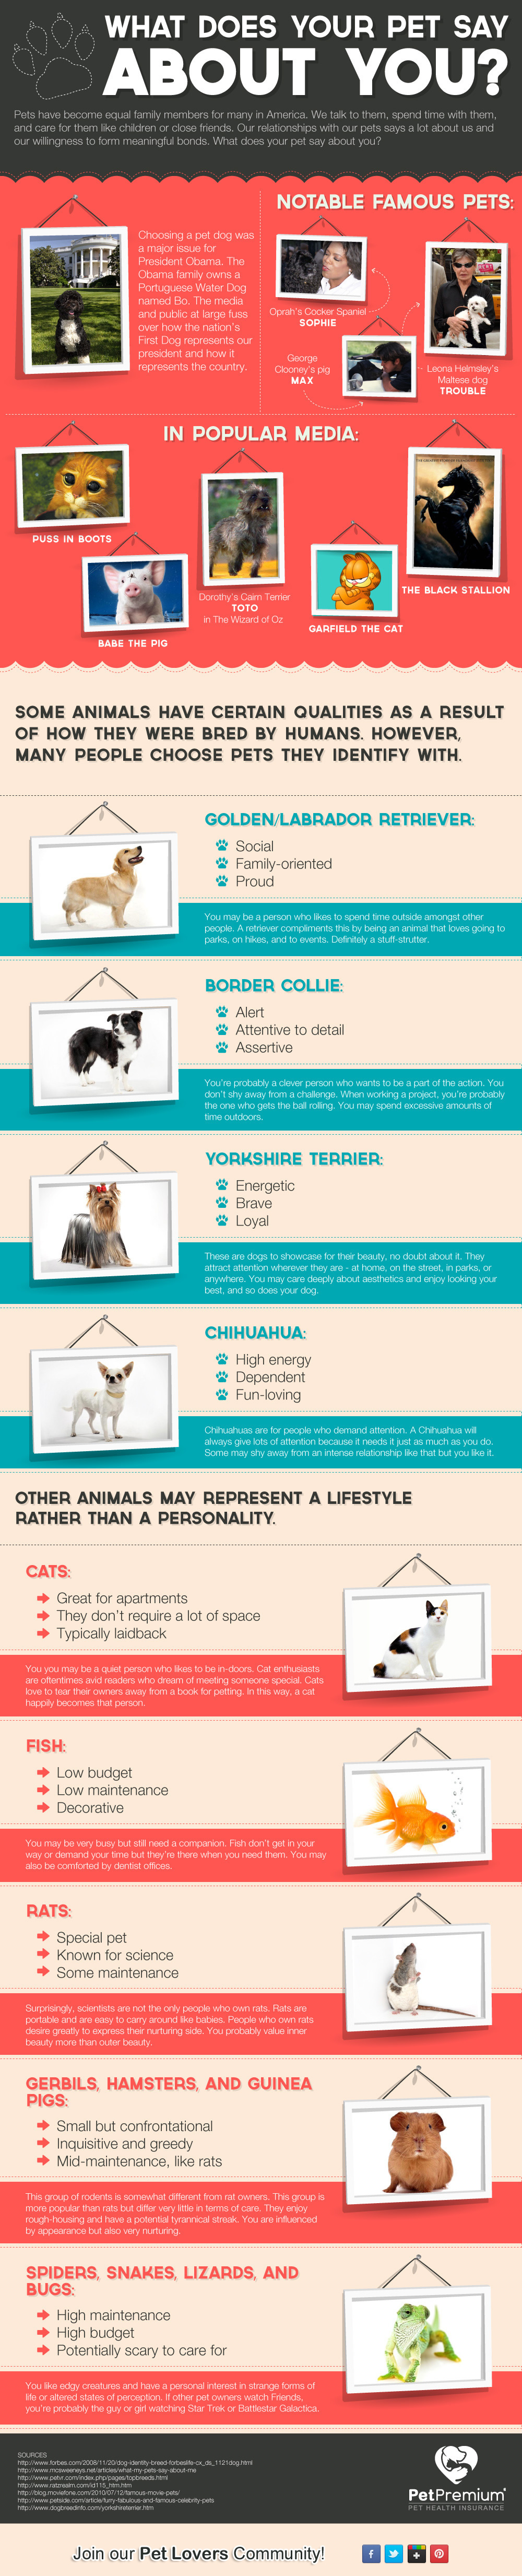 What Your Pet Says About You - PetPremium's Infographic